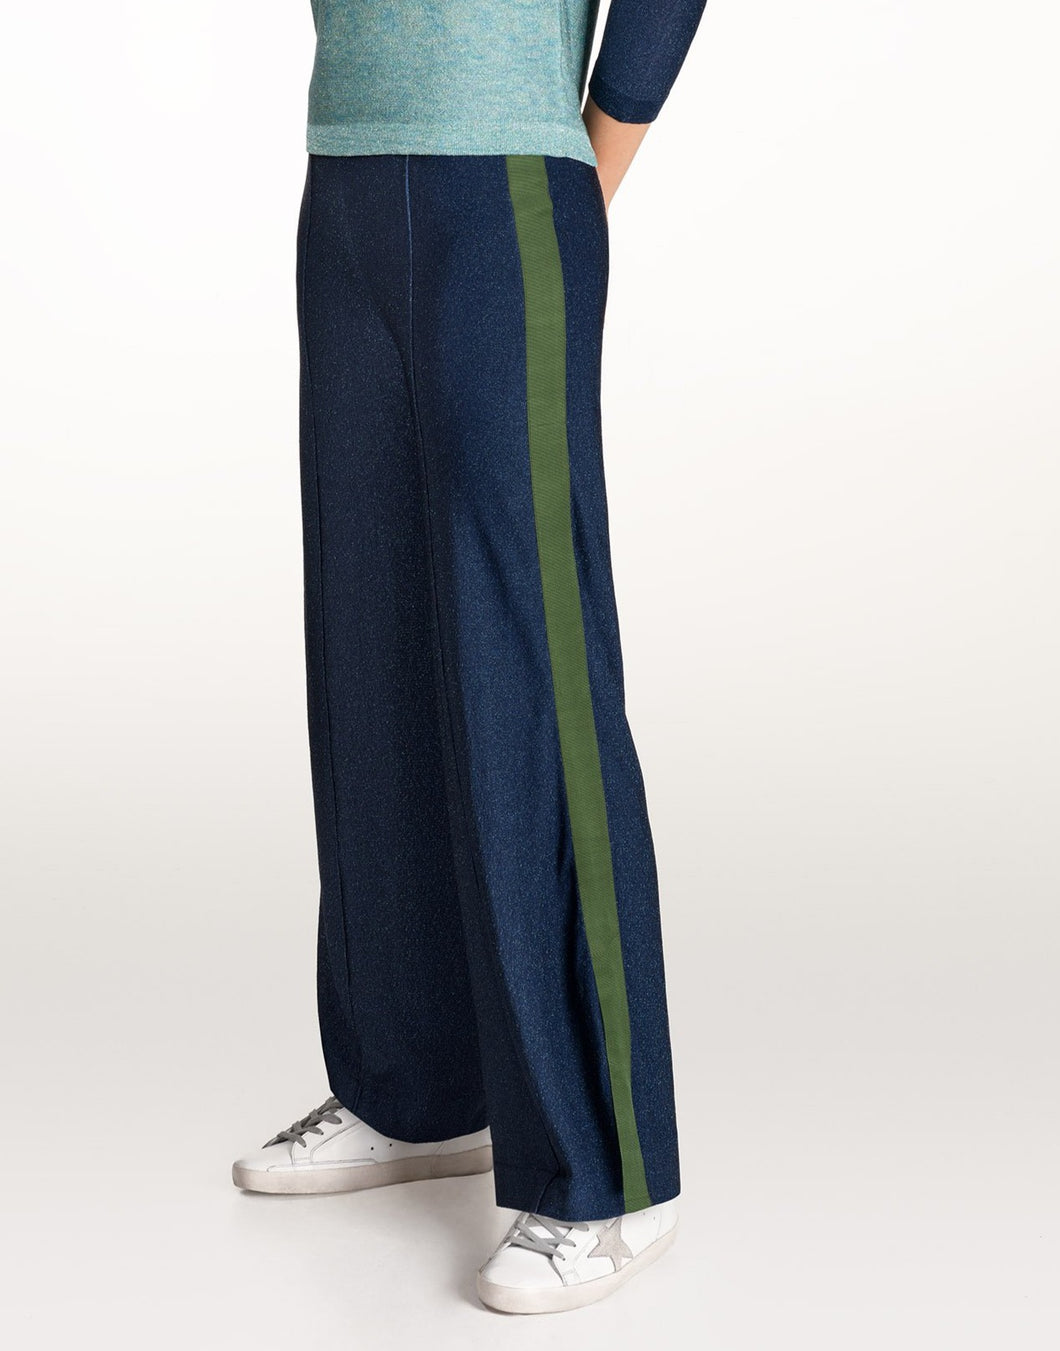 Cressida blue lurex trousers